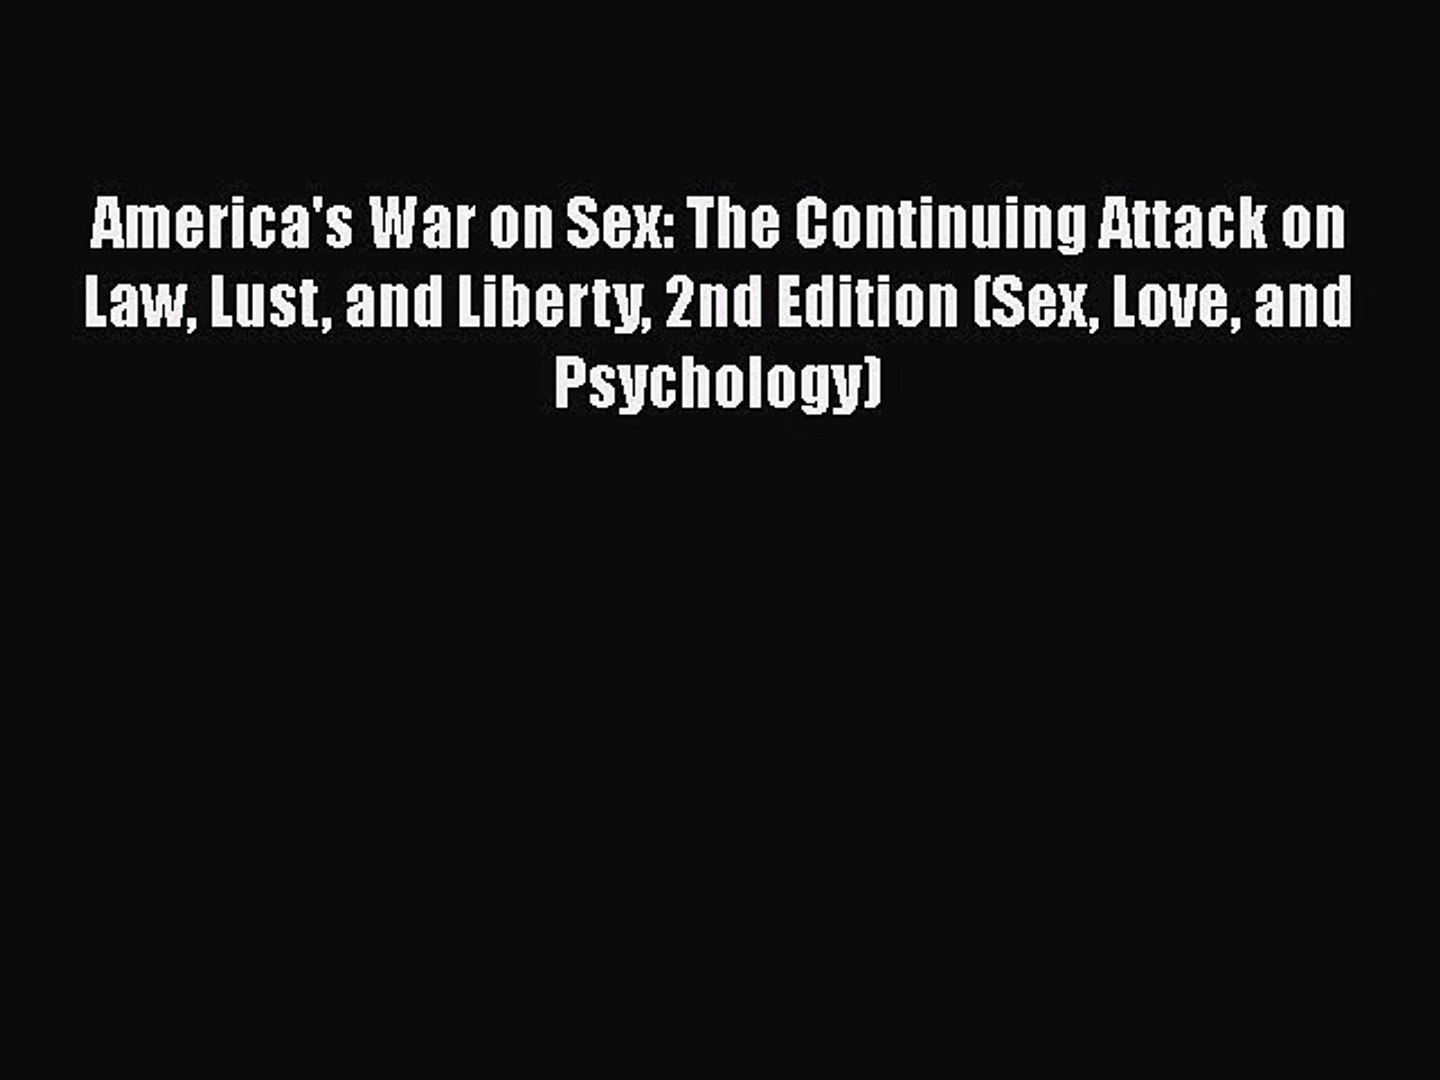 Read America's War on Sex: The Continuing Attack on Law Lust and Liberty 2nd Edition (Sex Love